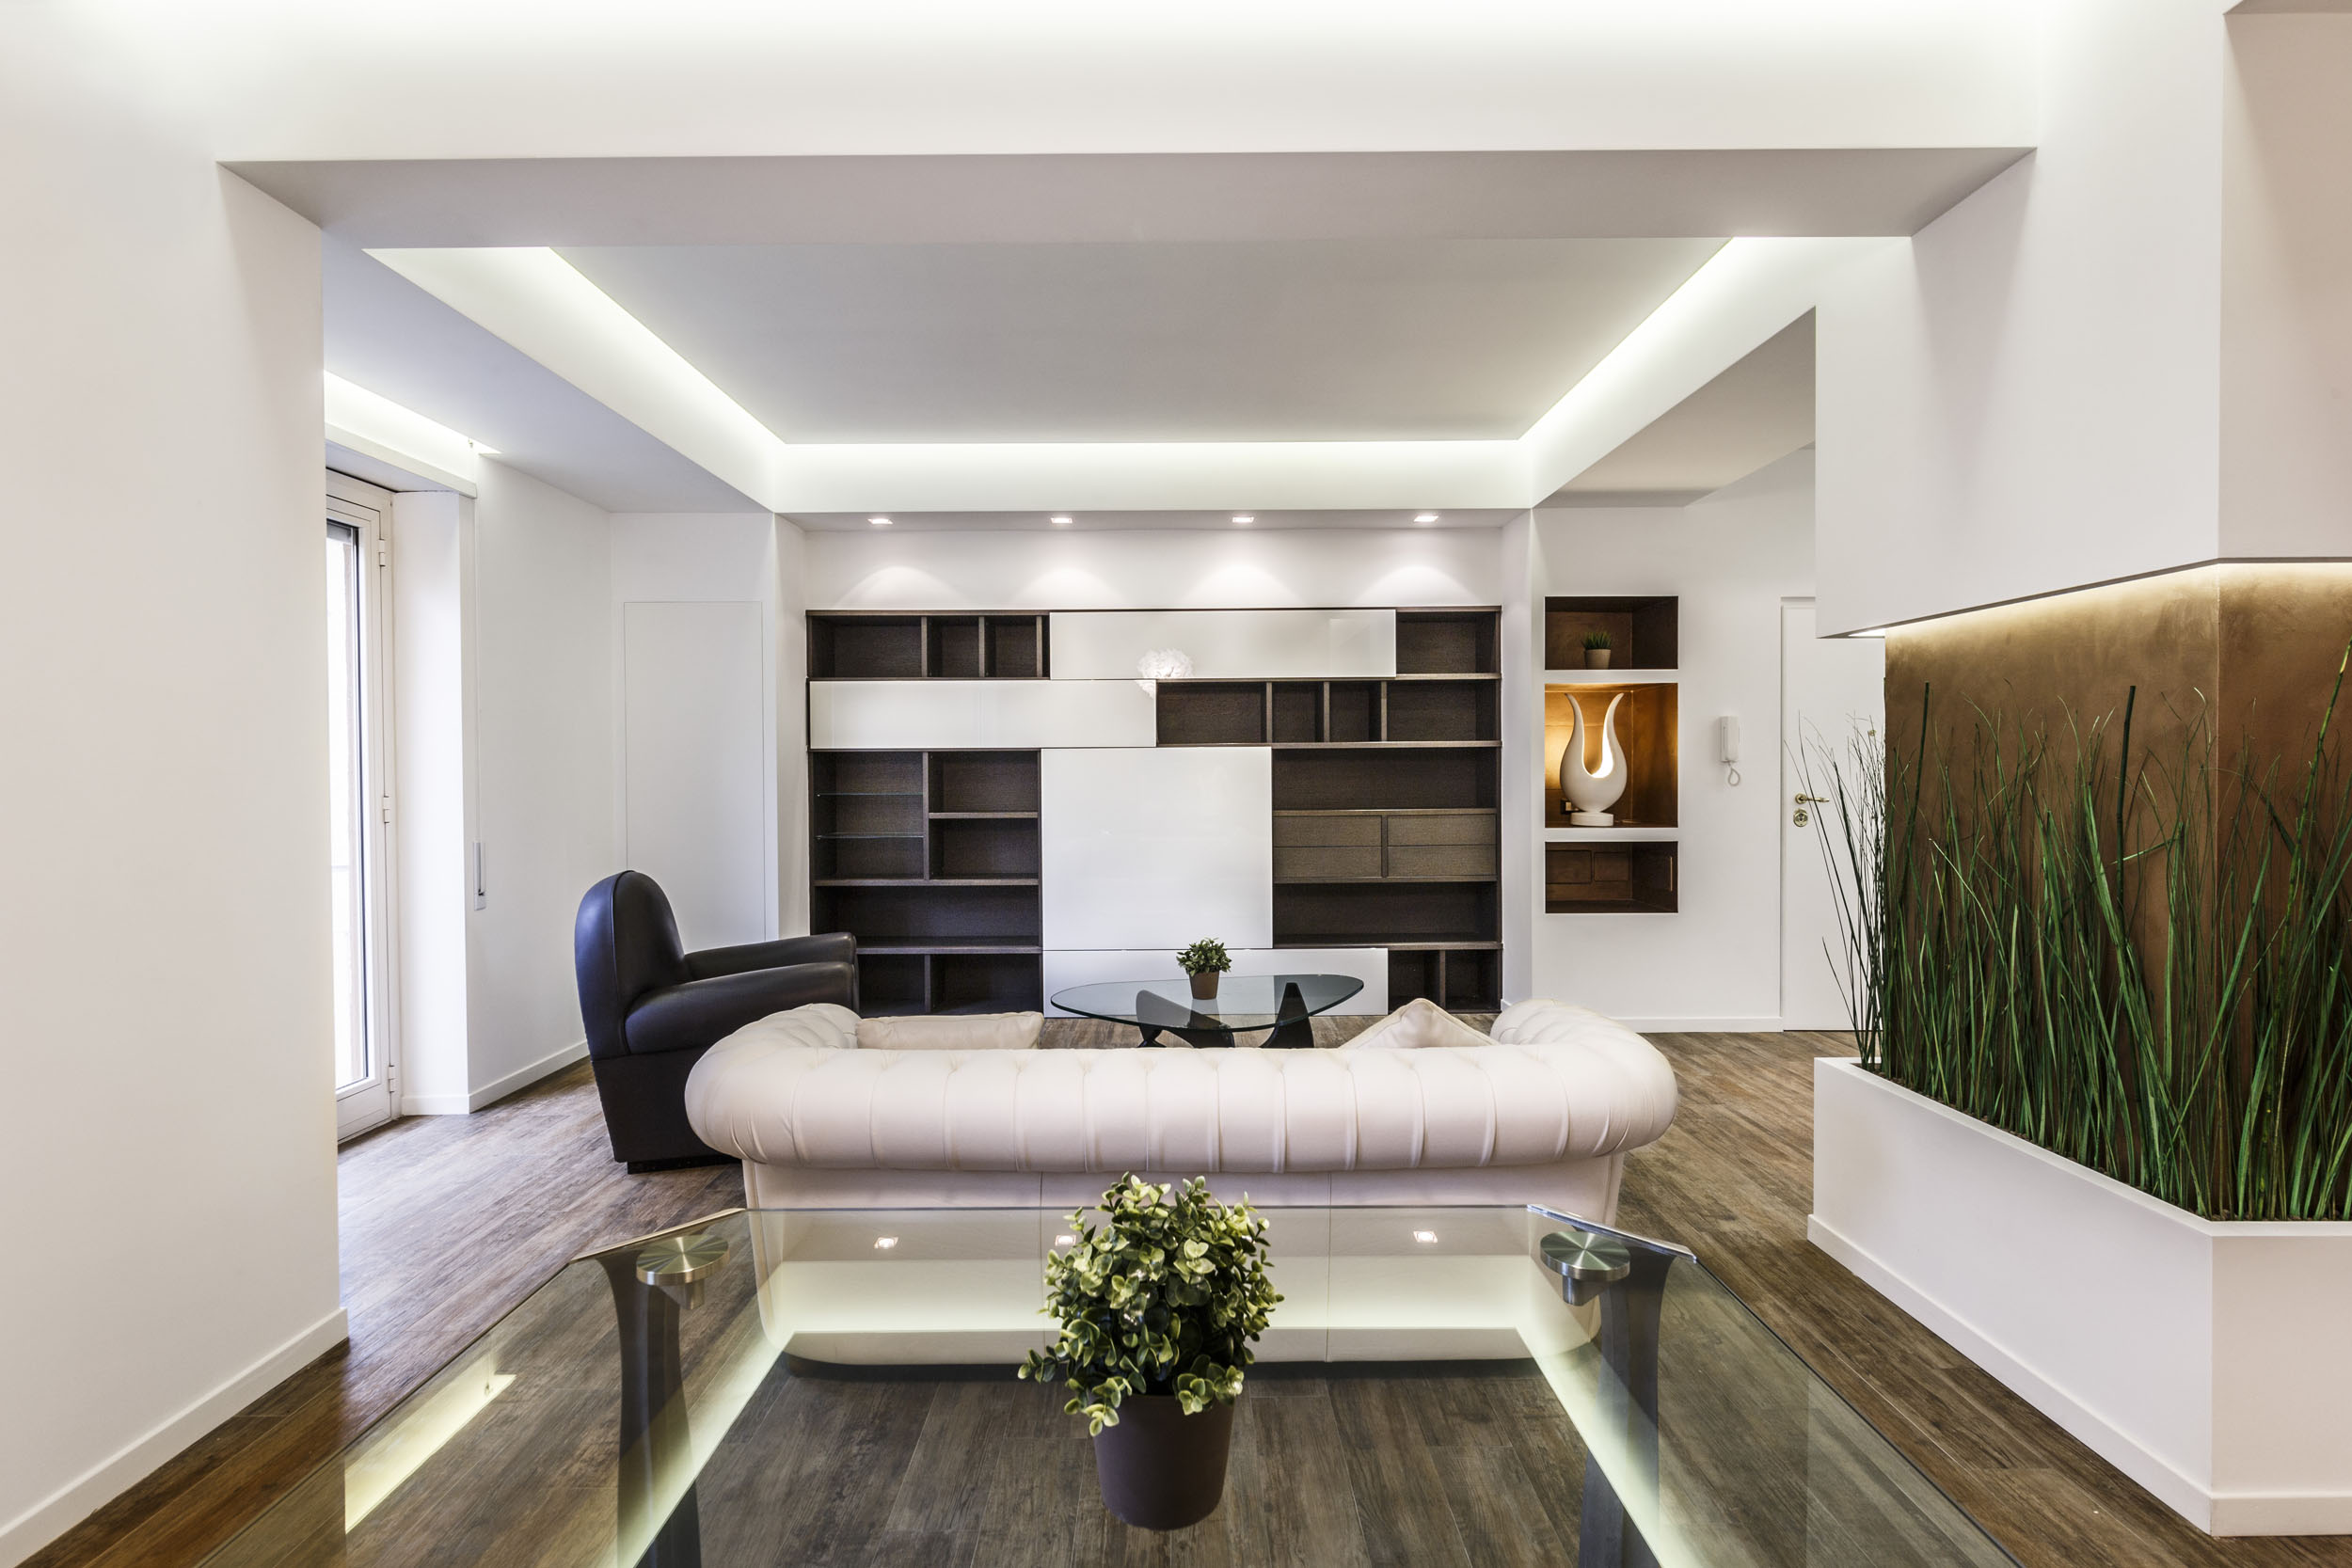 Beautiful apartment in italy by brain factory homedezen for Apartment design italien